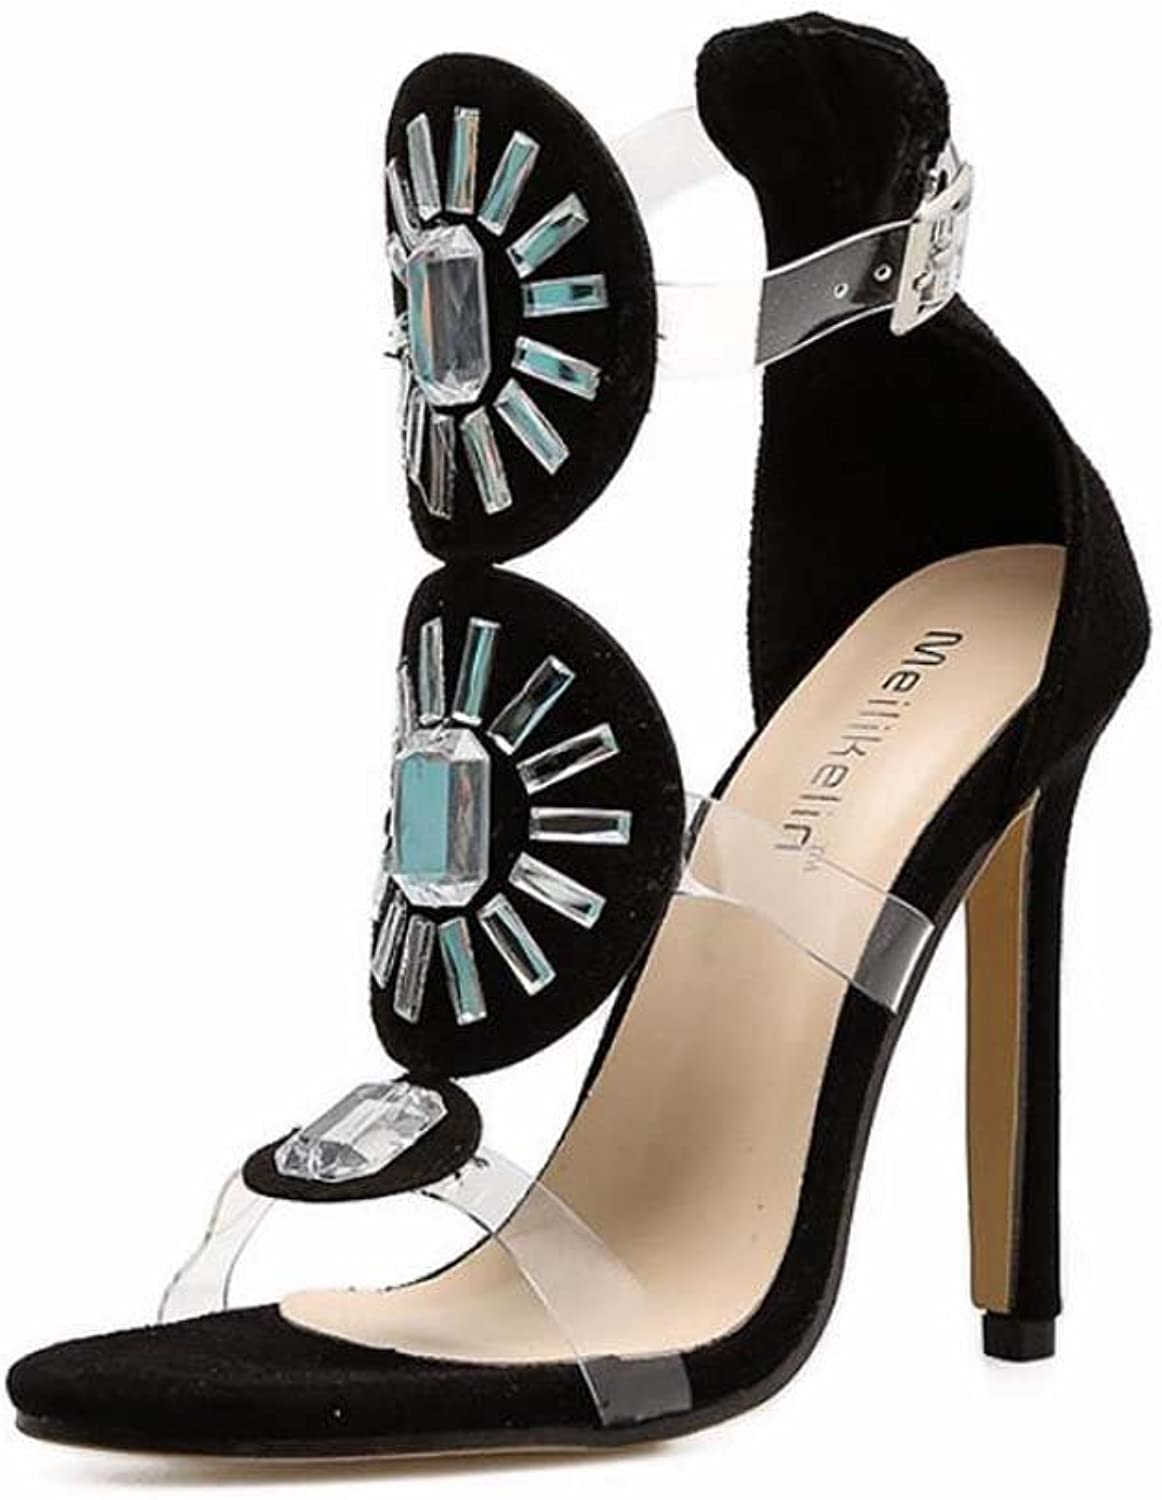 Women Pump 11.5cm Stiletto Open Toe D'Orsay Rhinestone Transparent Sandals Dress shoes Sexy colormatch Ankel Belt Buckle OL Court shoes Party shoes EU Size 34-40